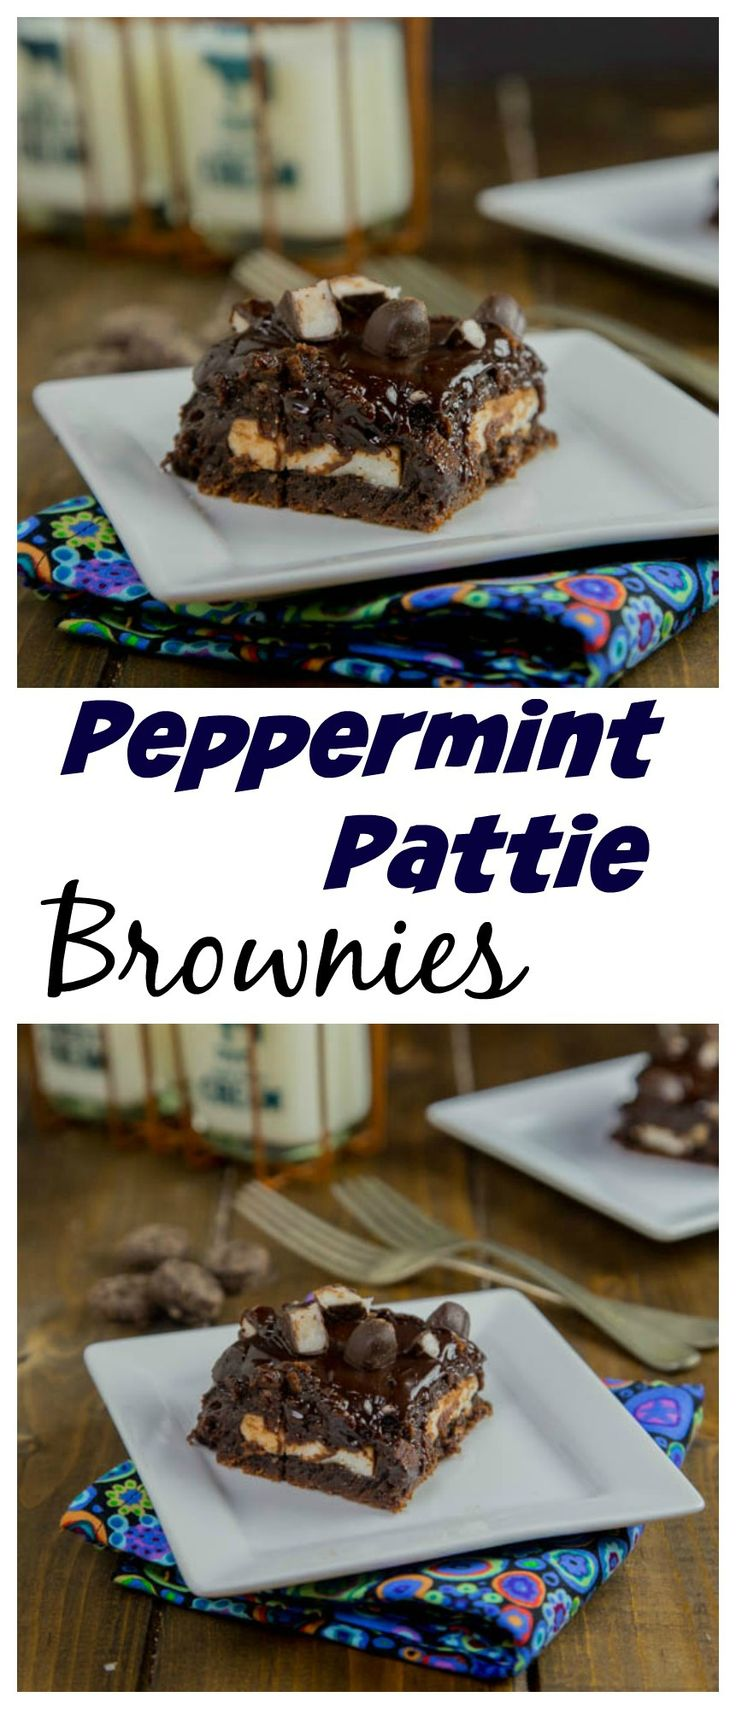 Peppermint Pattie Brownies – Rich and fudgy brownies with a layer of peppermint pattie candies, and topped with a gooey chocolate ganache.